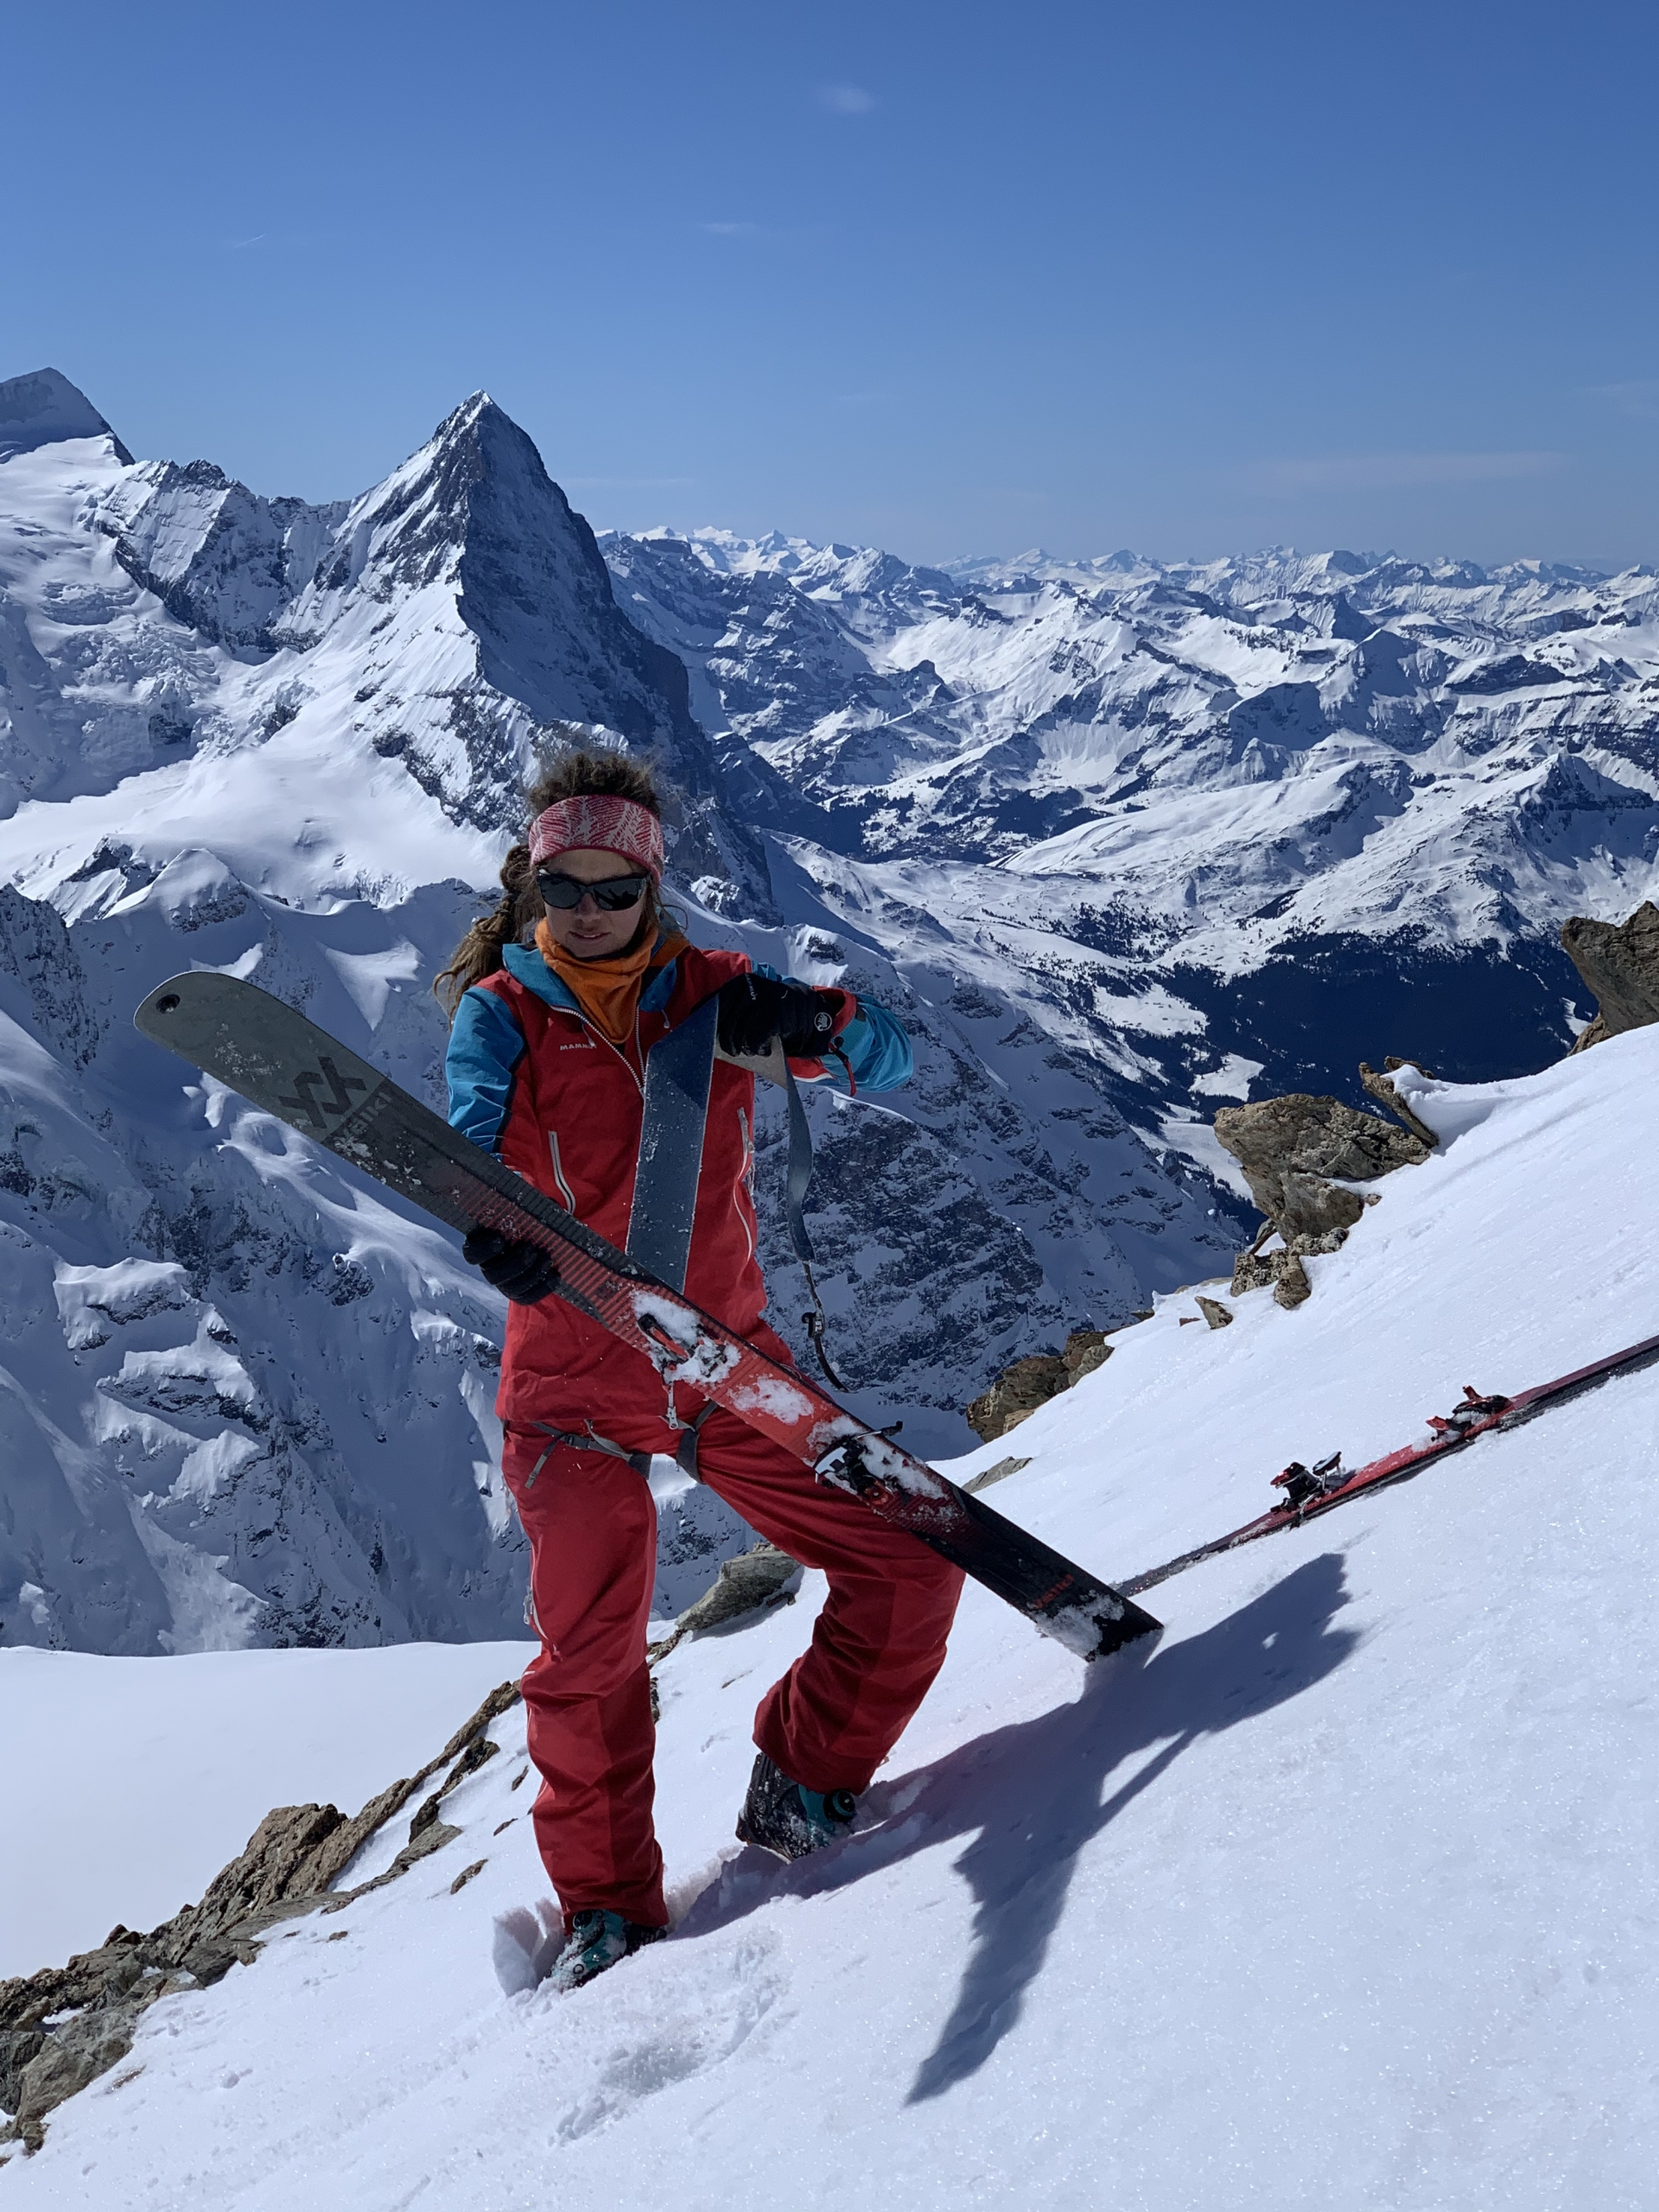 Mammut Athlete and Mountain Guide, Caro North, in front of the Eiger. ©Karen Bockel.